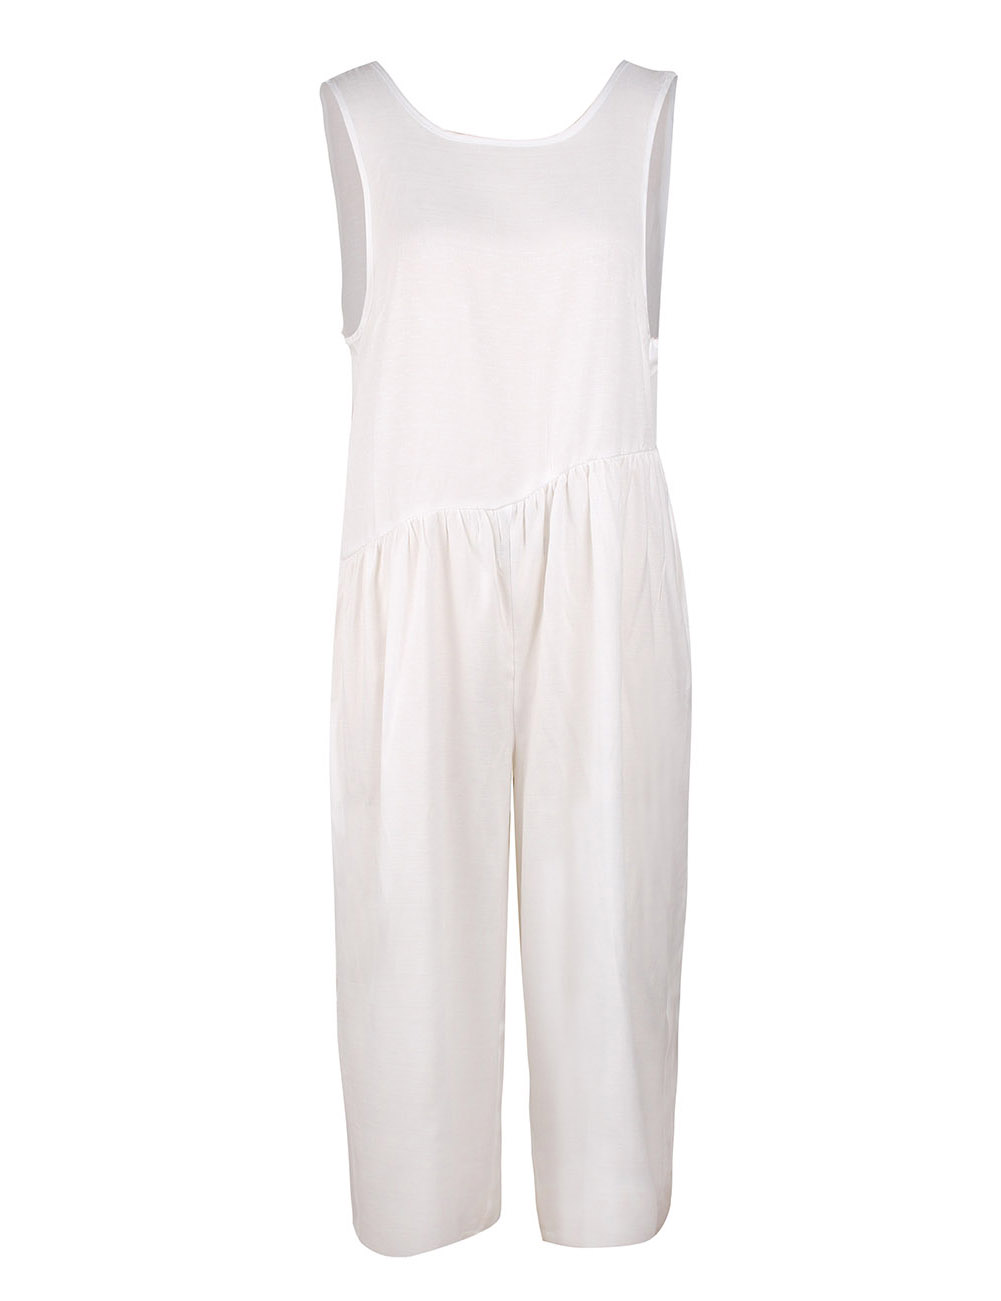 //cdn.affectcloud.com/hexinfashion/upload/imgs/Dress/Jumpsuit_Romper/H195028-WH1/H195028-WH1-201911065dc29caf91373.jpg